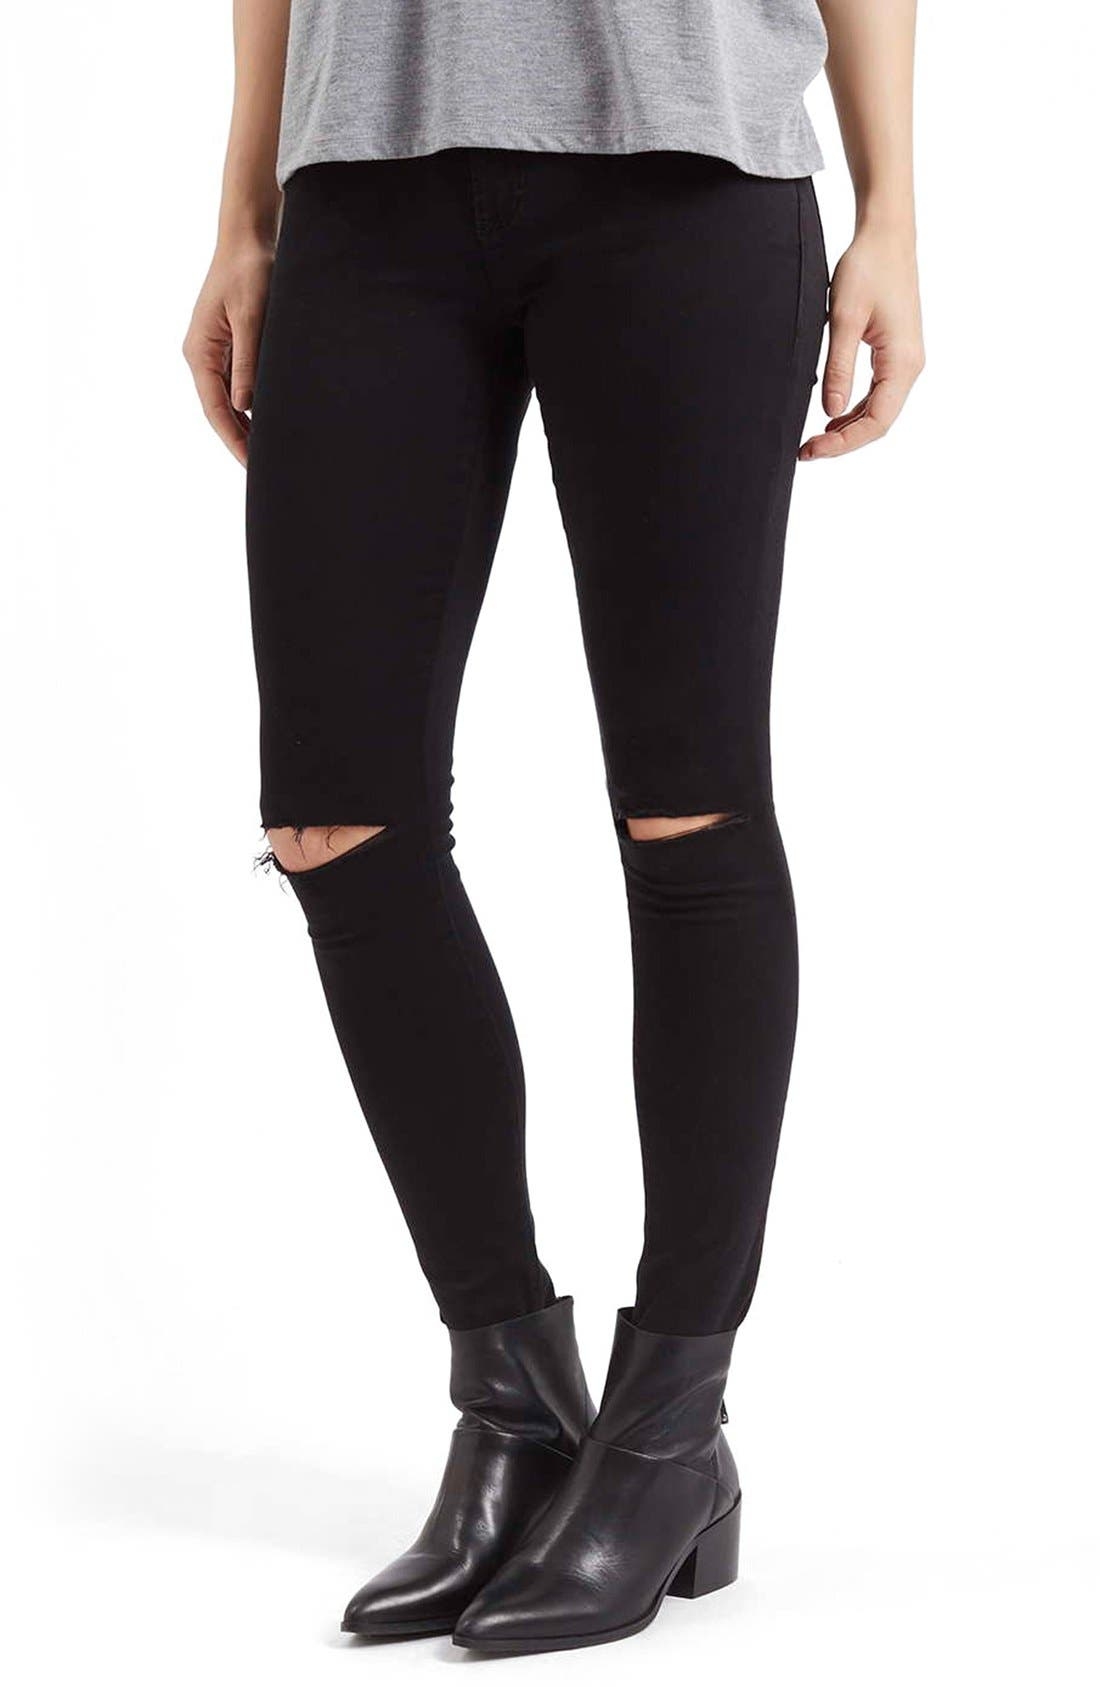 Alternate Image 1 Selected - Topshop Moto 'Leigh' Ripped Skinny Jeans (Black)